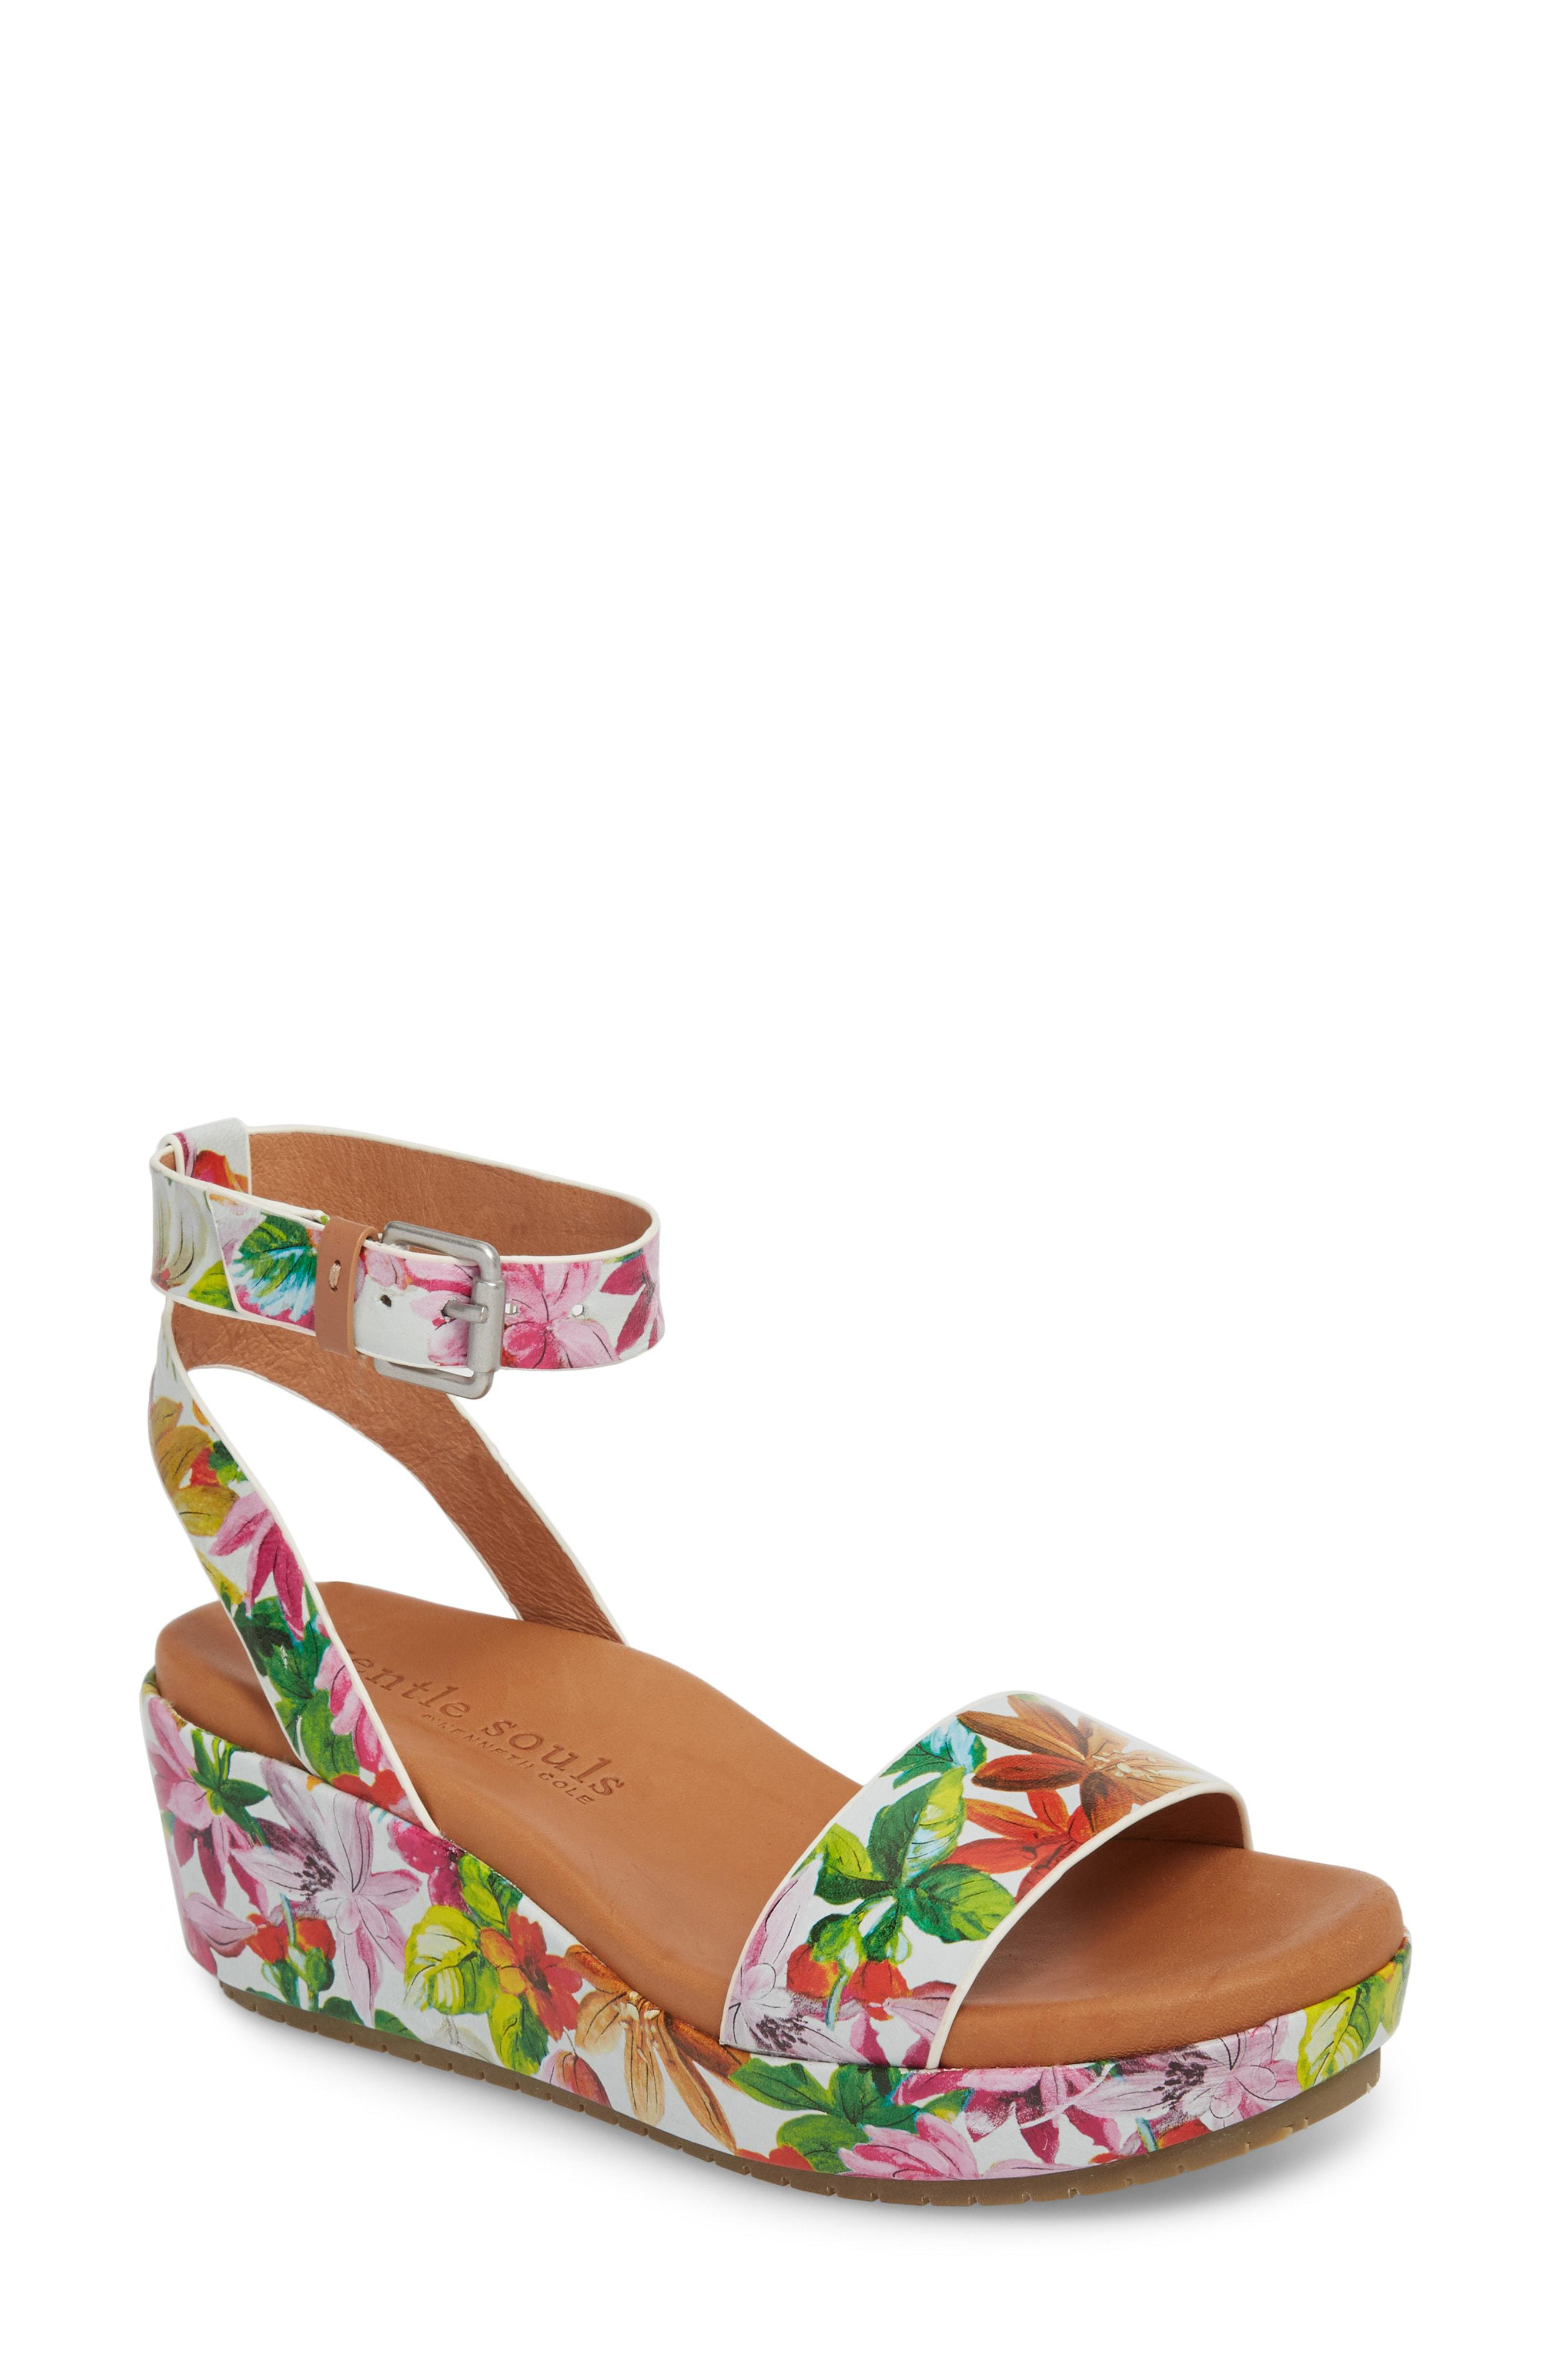 d4409a8558 Gallery. Previously sold at: Nordstrom · Women's White Wedge Shoes ...